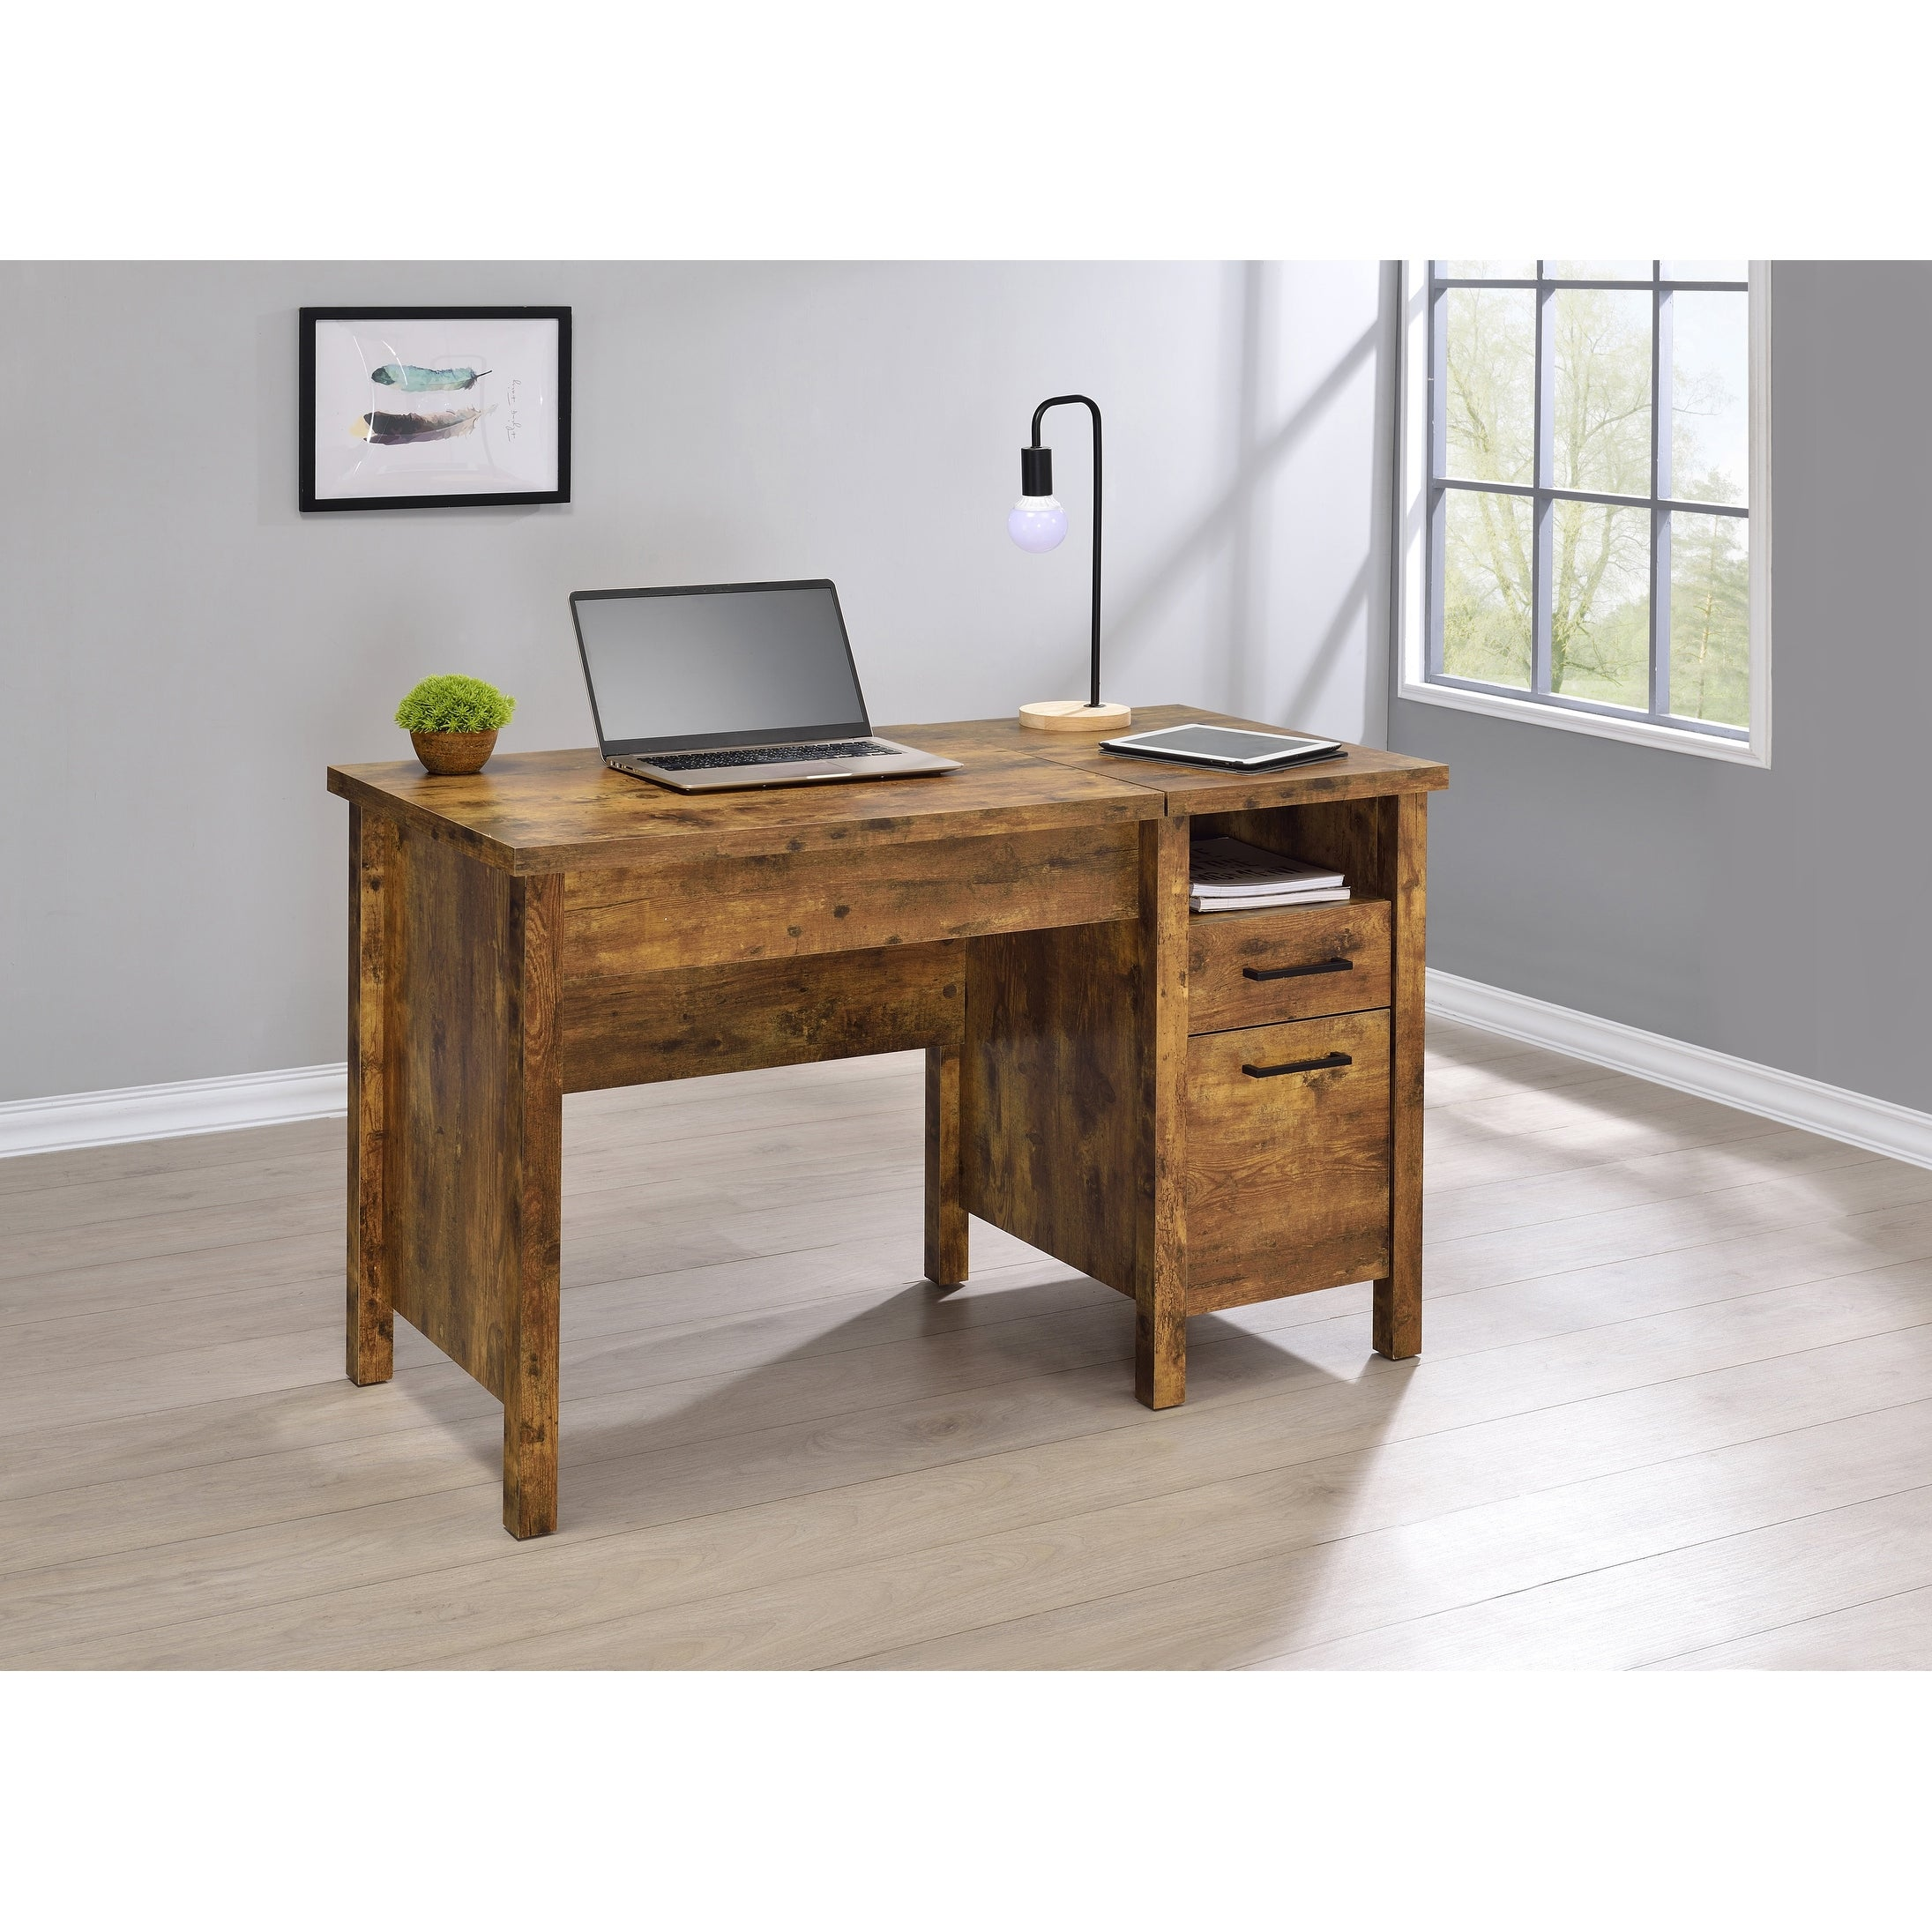 Chicolm Antique Nutmeg Lift Top Office Desk With File Cabinet Overstock 32118147